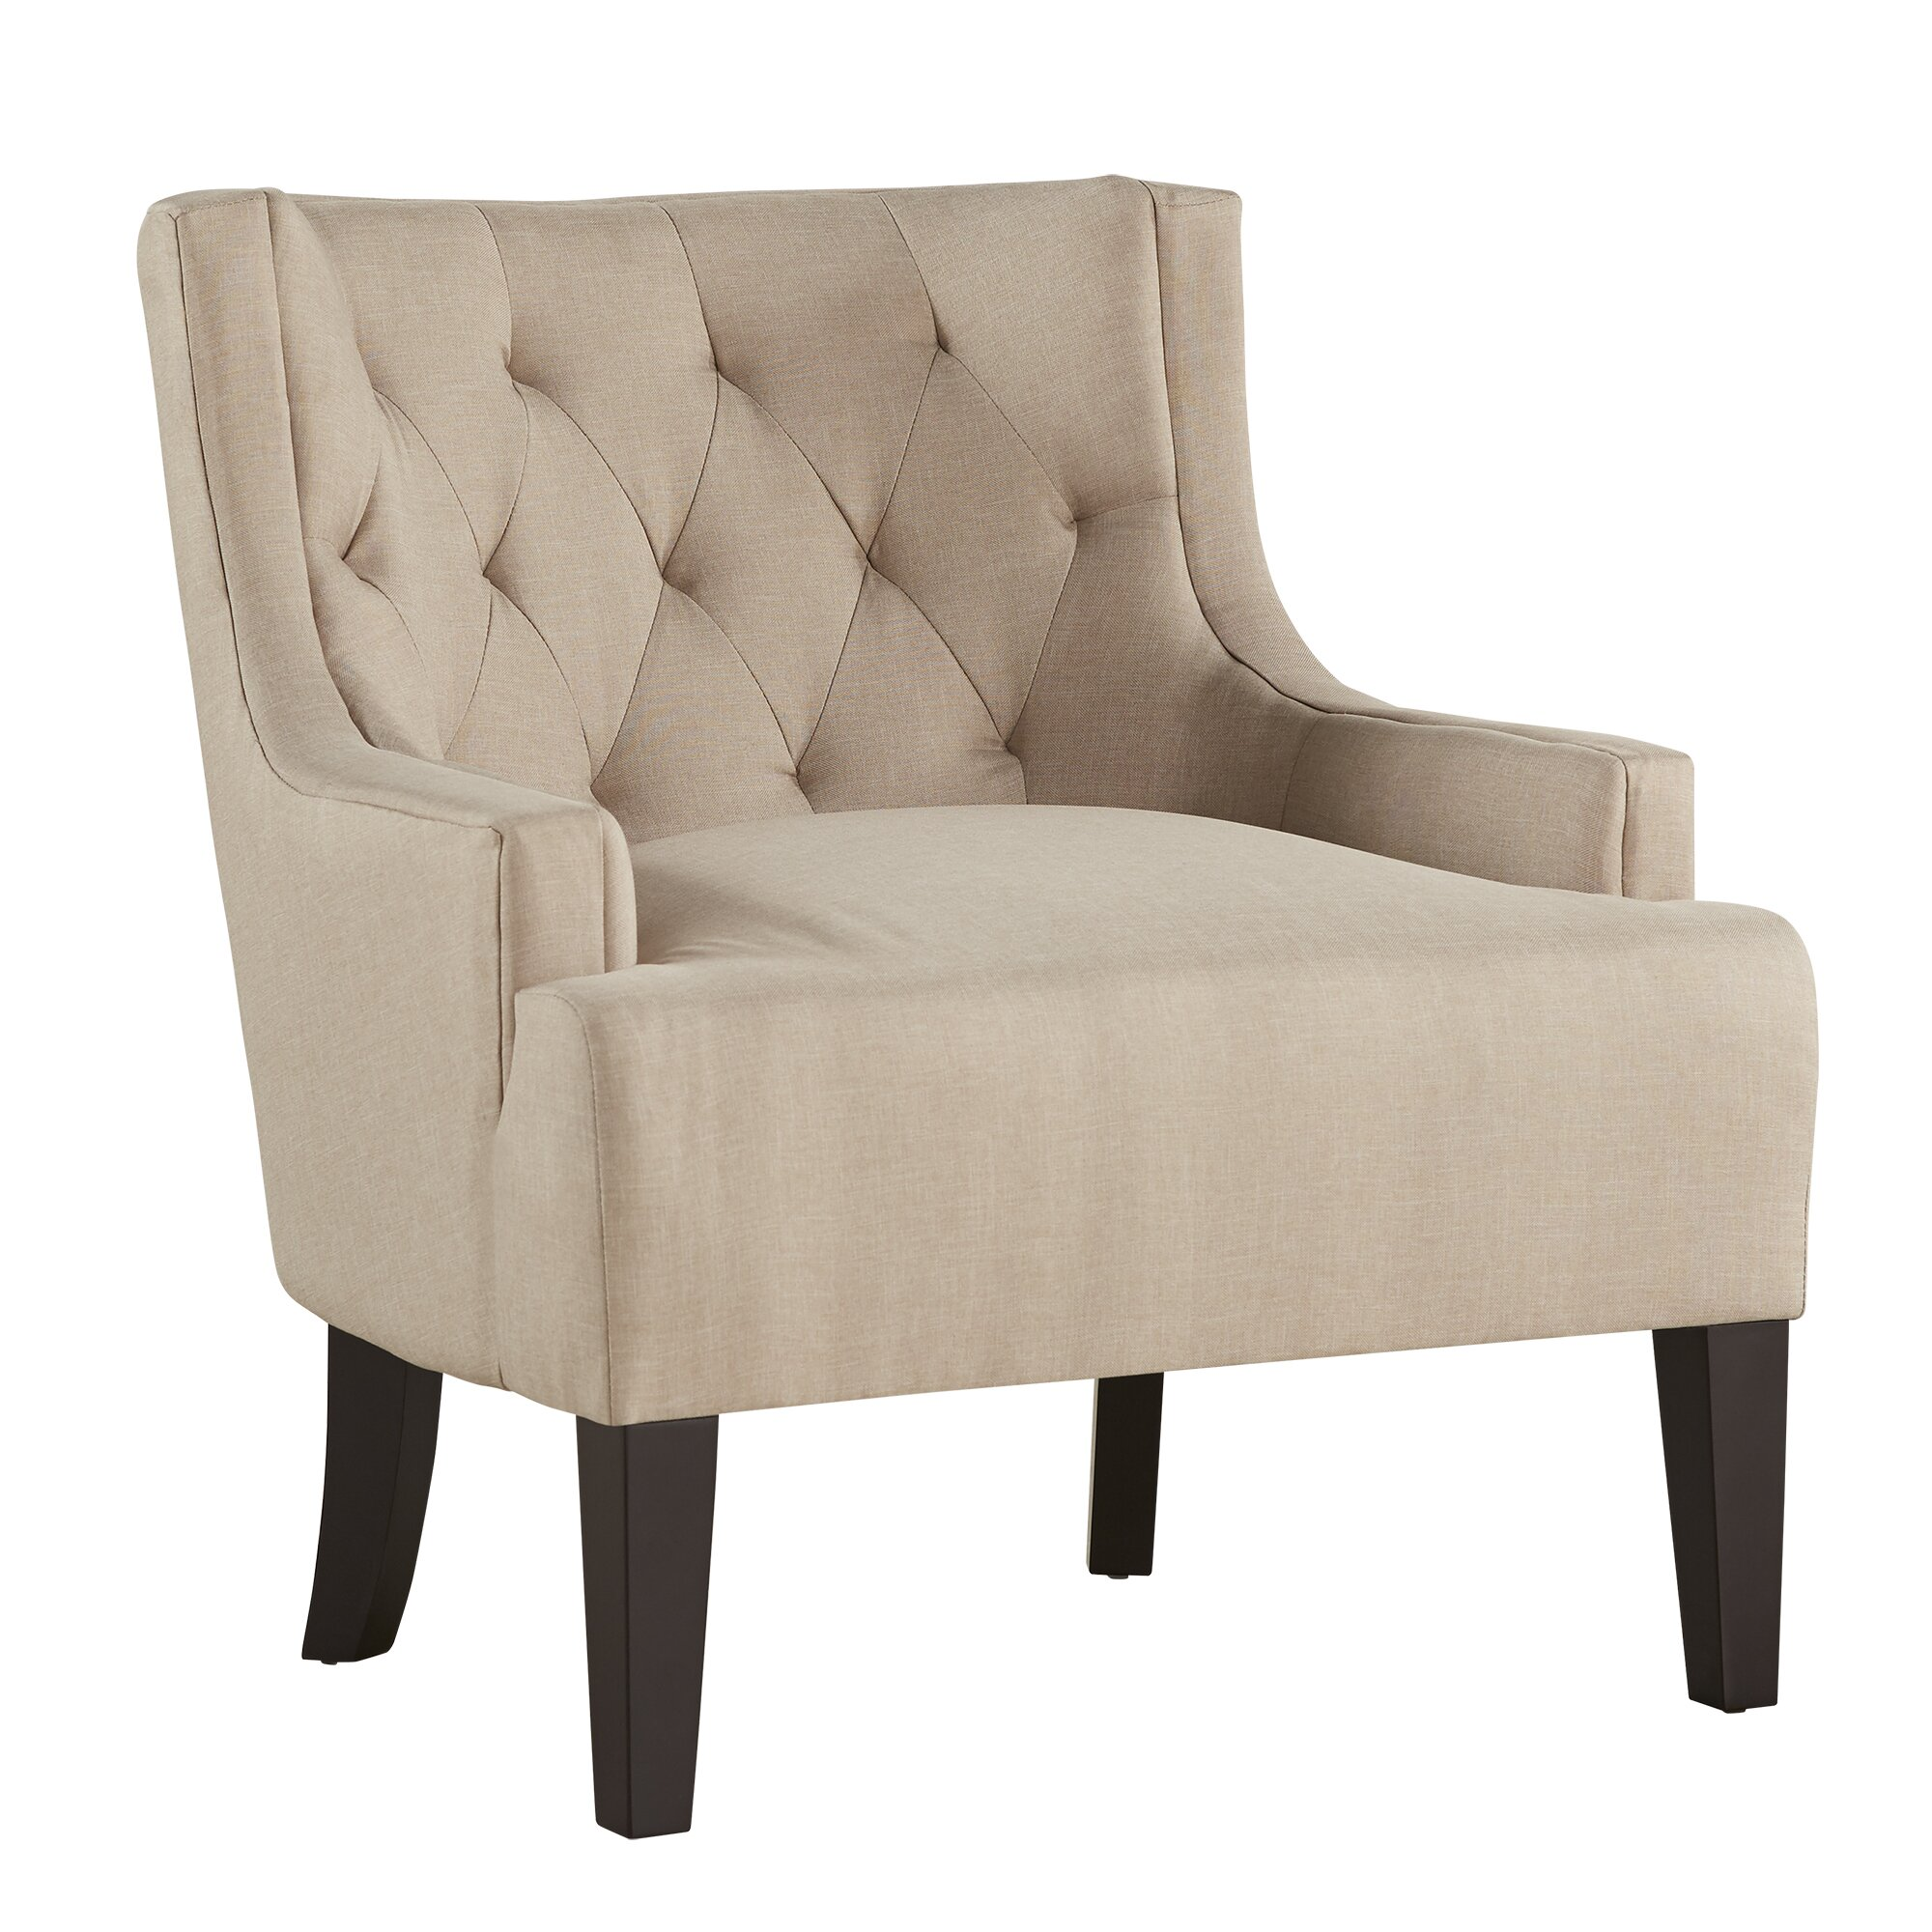 Kingstown home dawan tufted accent arm chair reviews for Furniture chairs